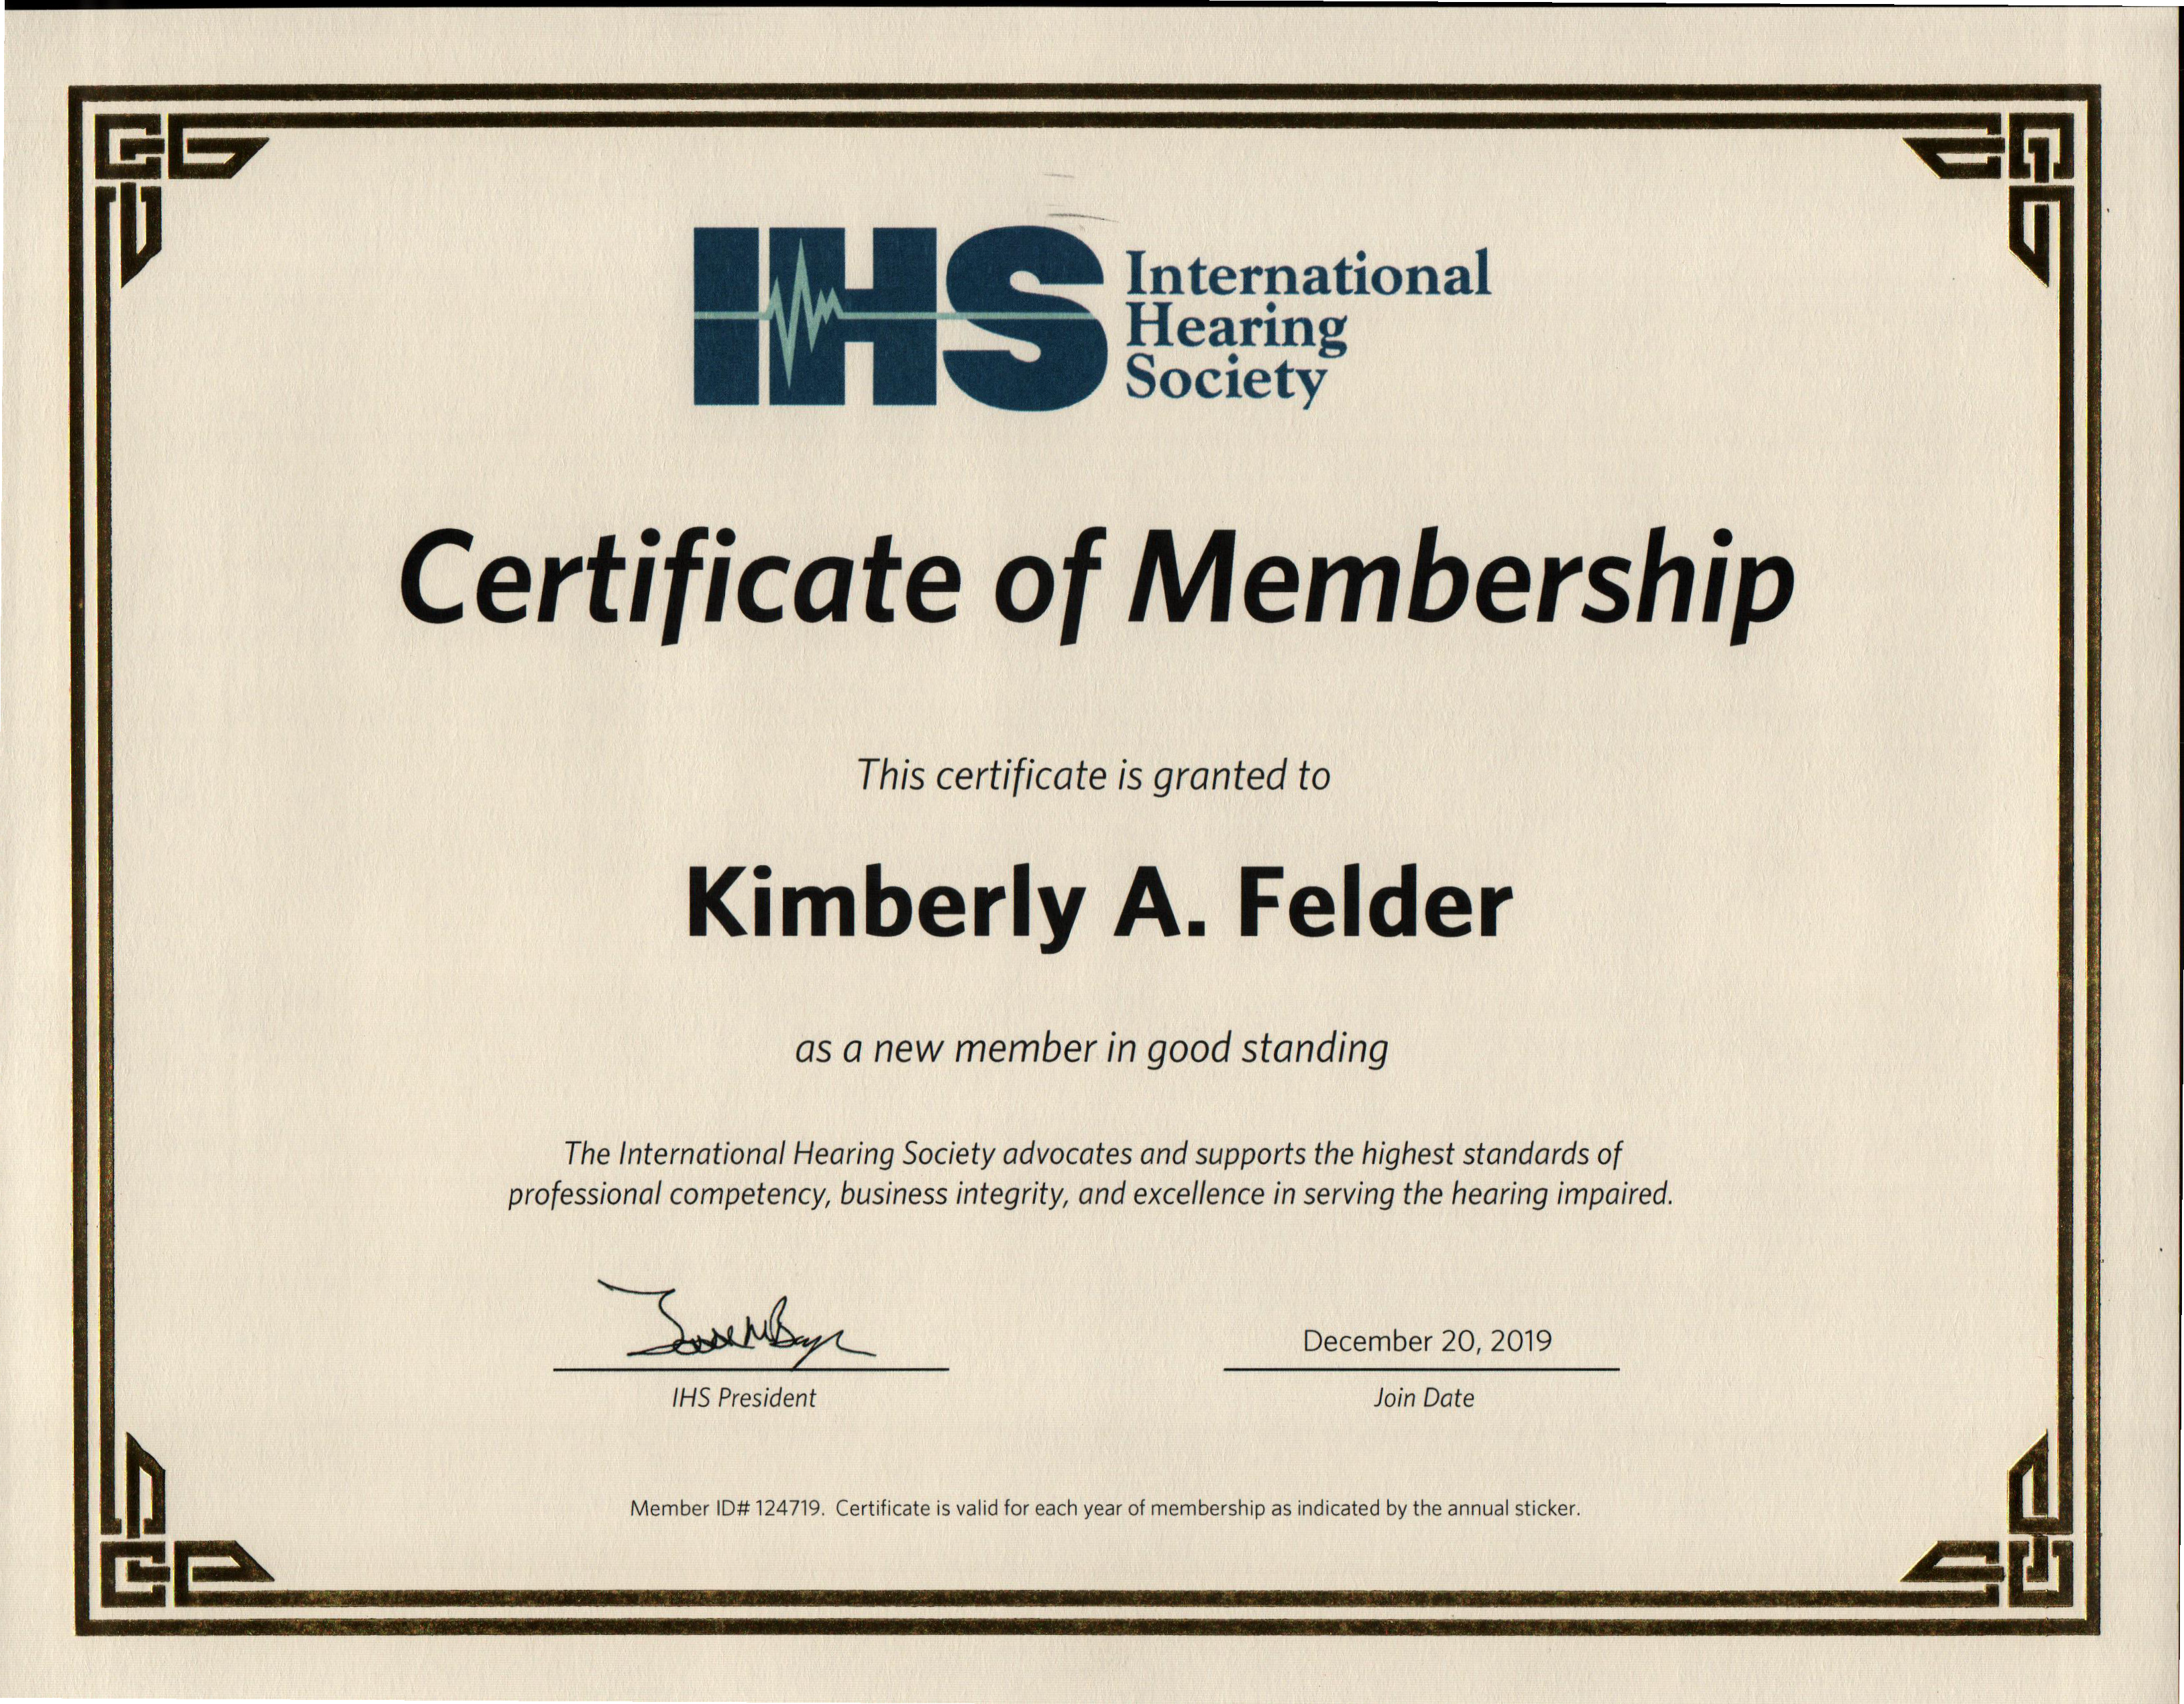 Kimberly Felder's International Hearing Society Certificate